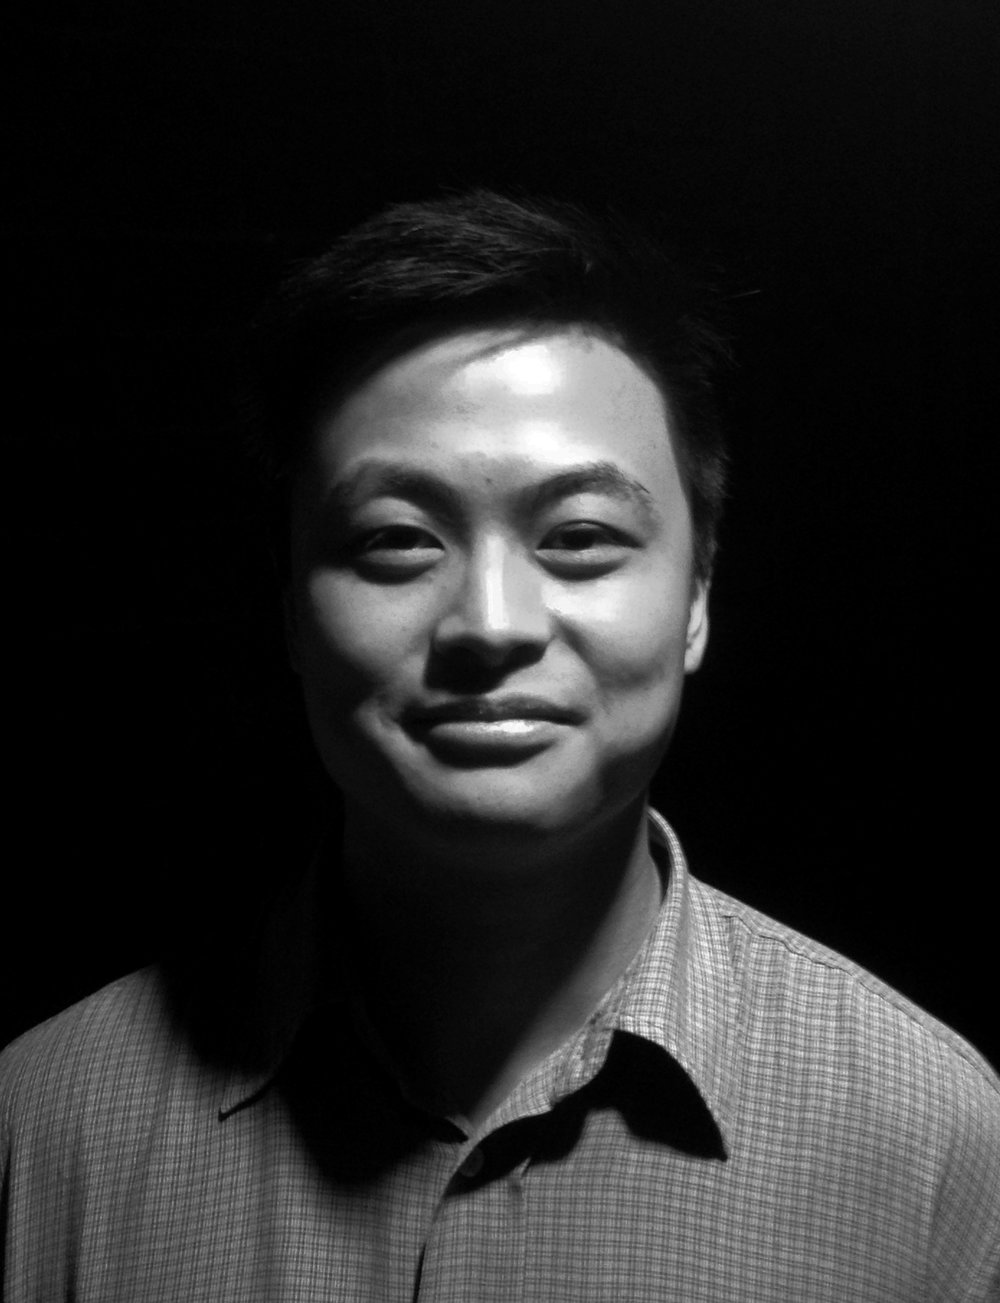 James Lew Headshot.jpg